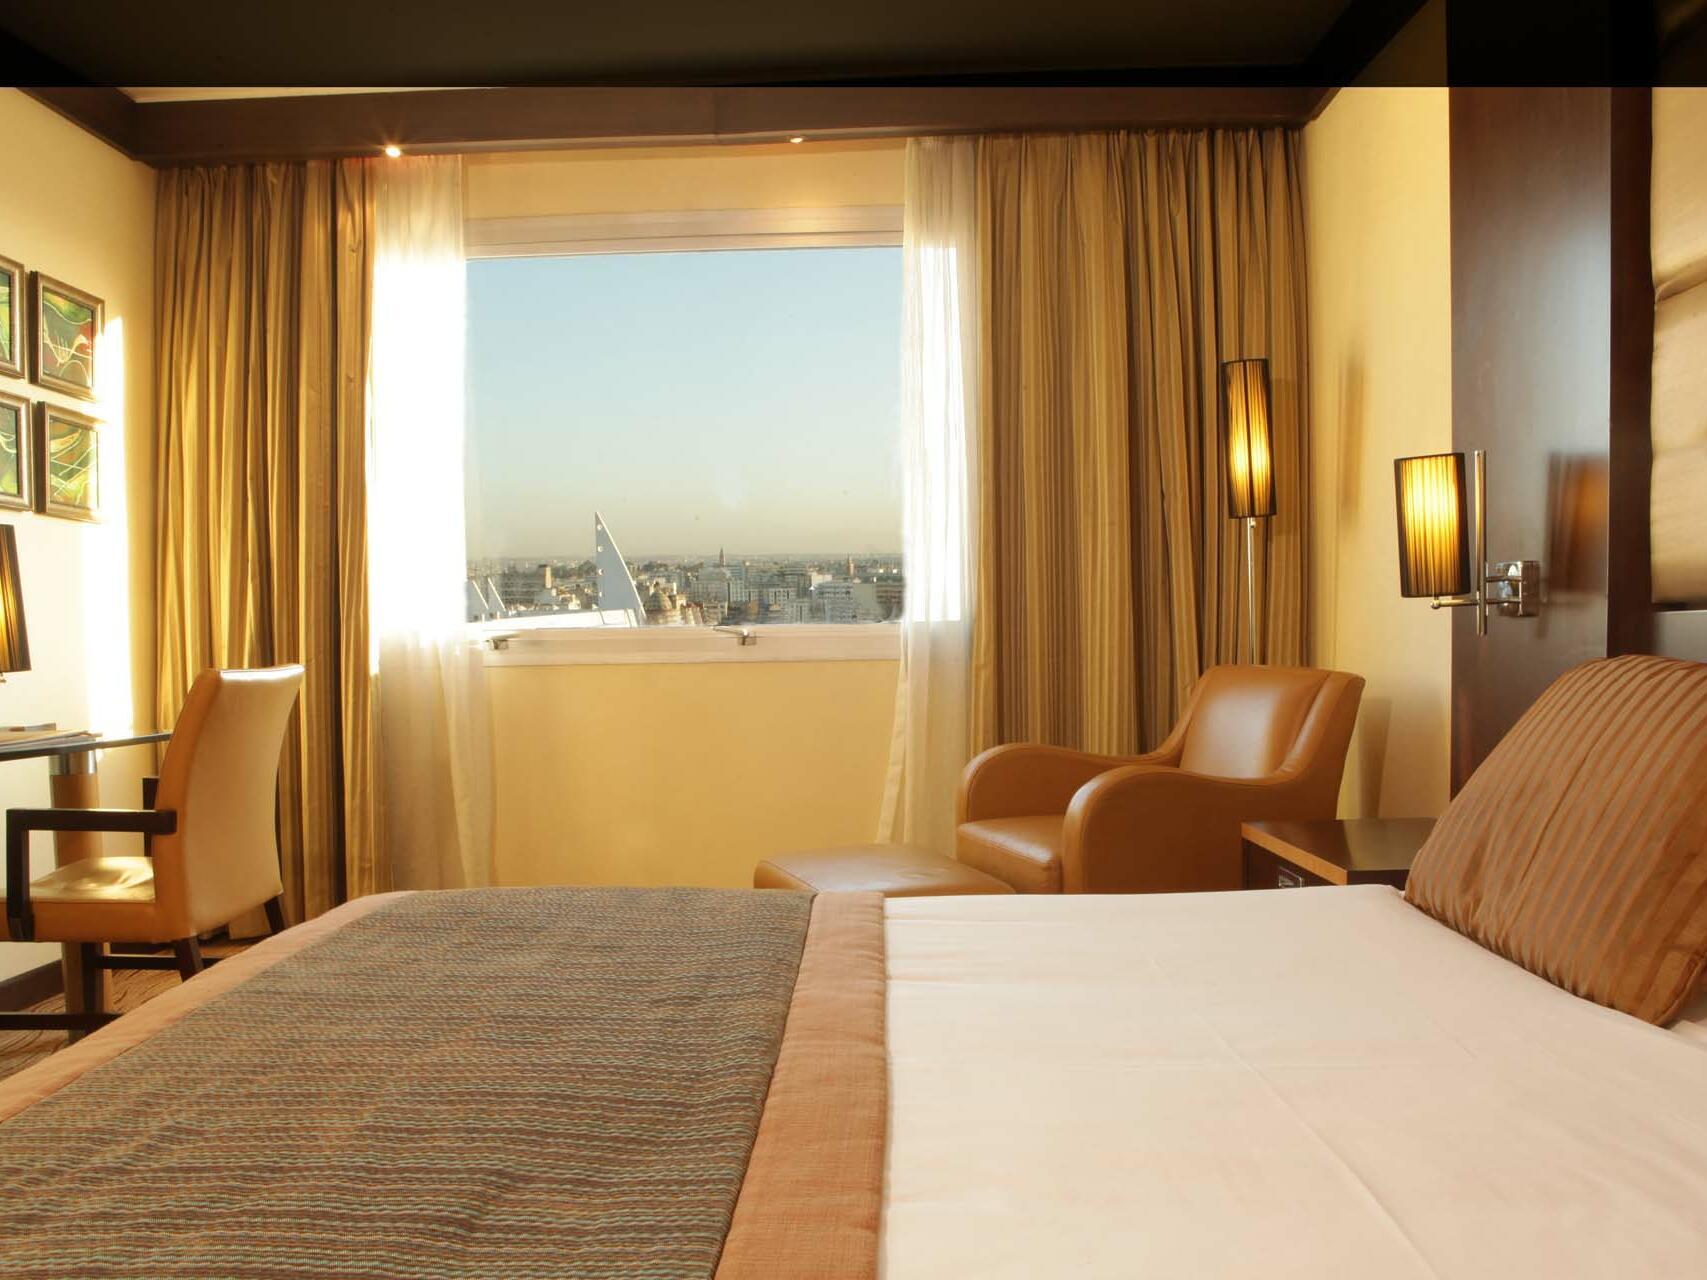 Large Bed with beautiful Window View - Farah Casablanca Hotel